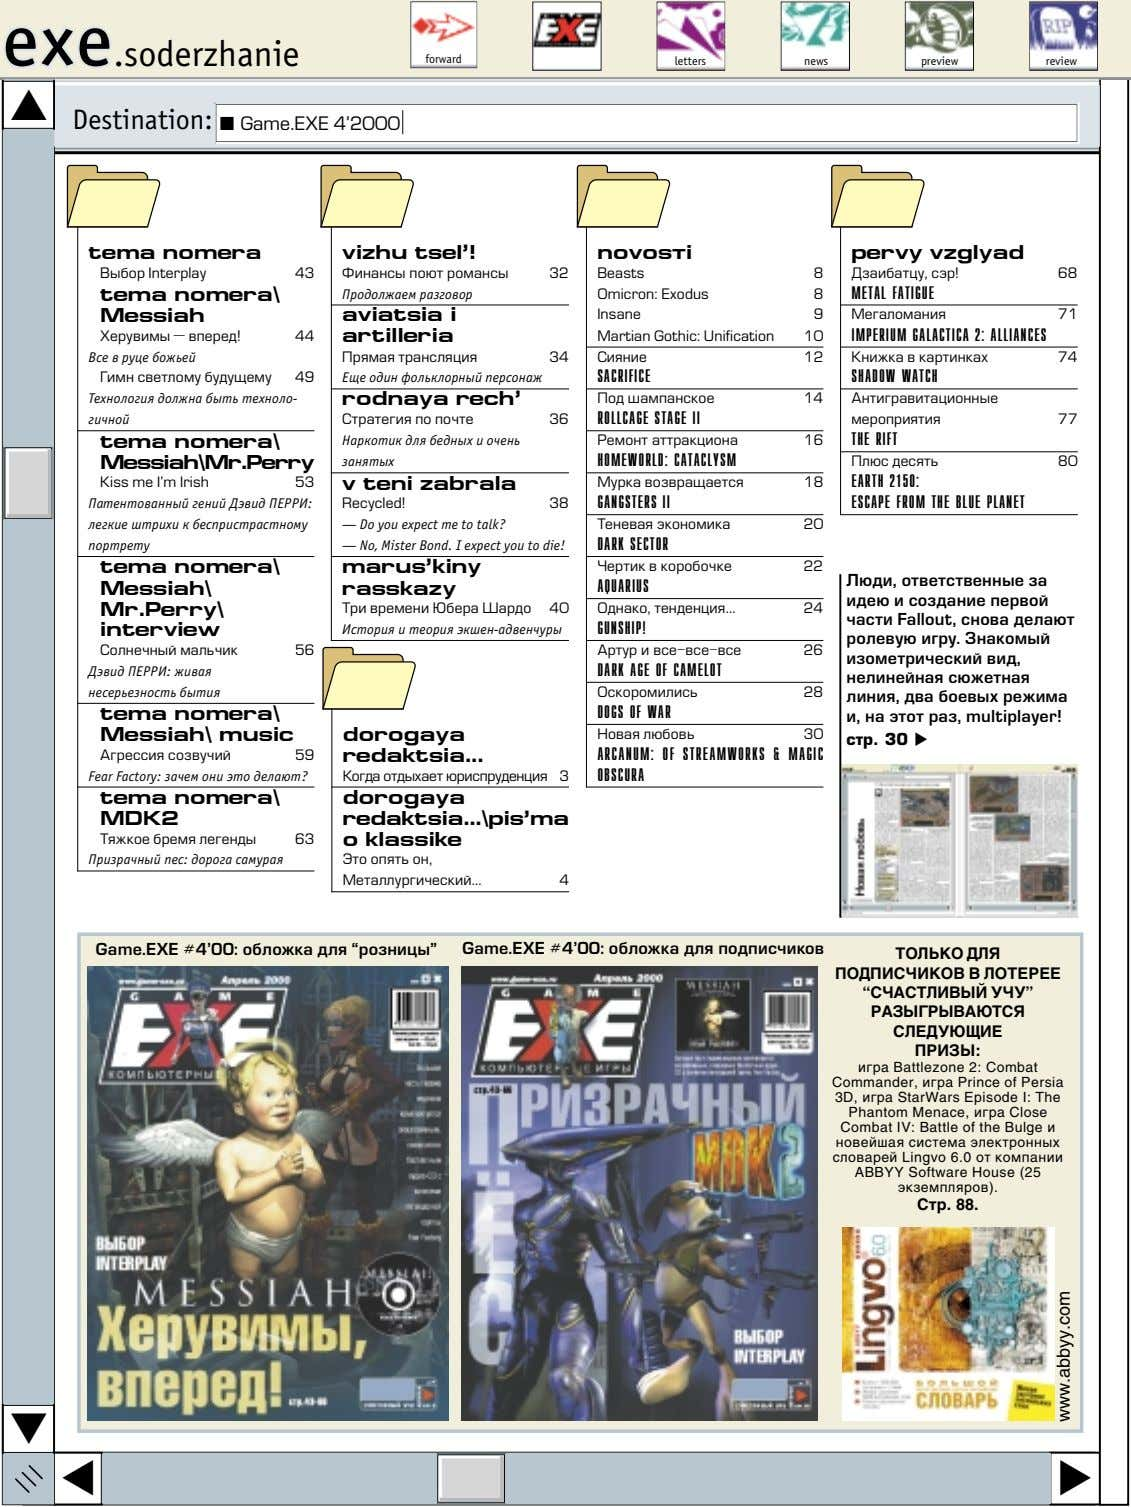 exe.soderzhanie forward letters news preview review Destination: Game.EXE 4'2000 tema nomera vizhu tsel'!